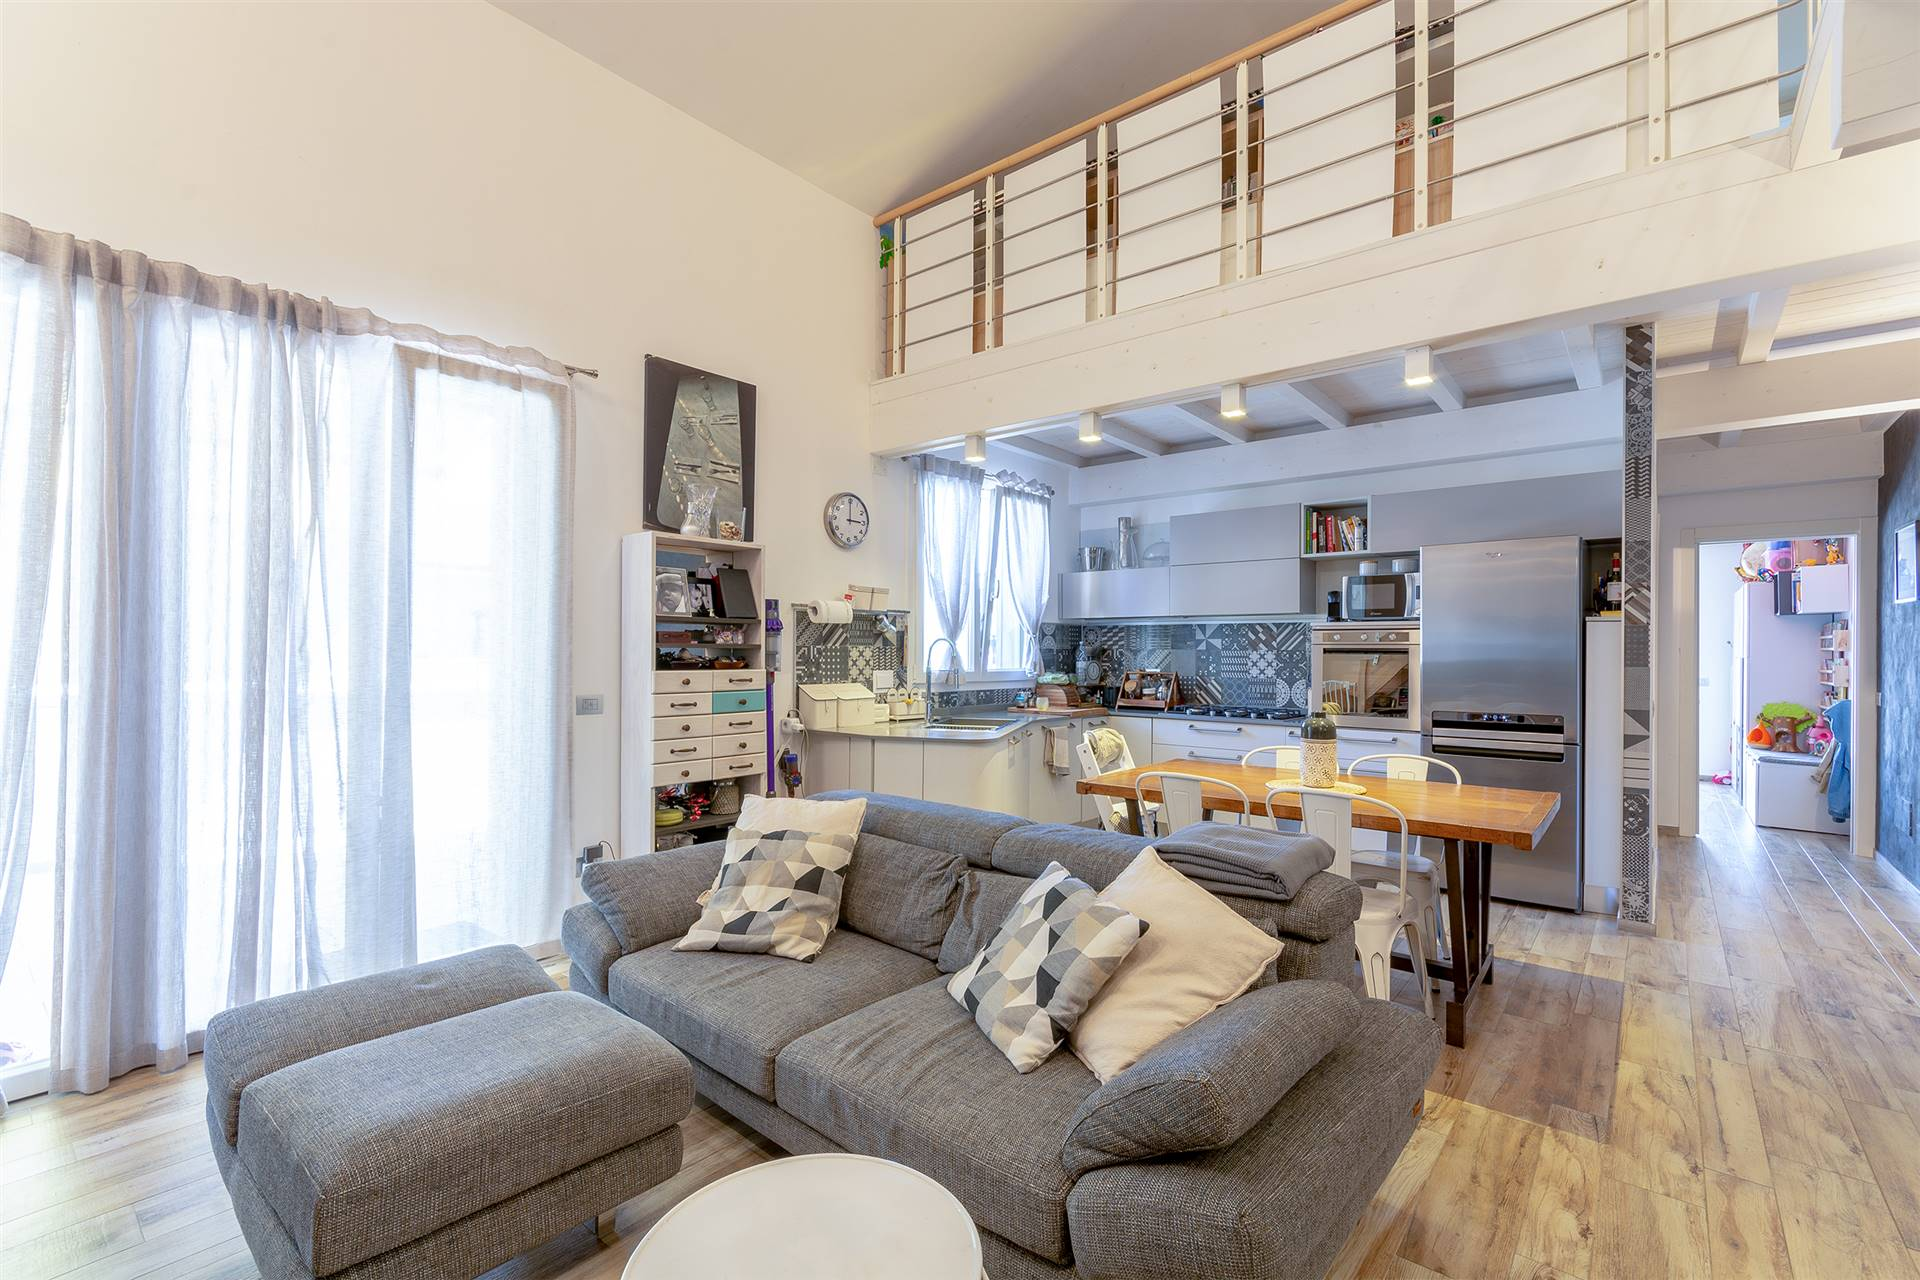 LA MADONNINA, CAMPI BISENZIO, Apartment for sale of 85 Sq. mt., Excellent Condition, Heating Individual heating system, Energetic class: A, placed at